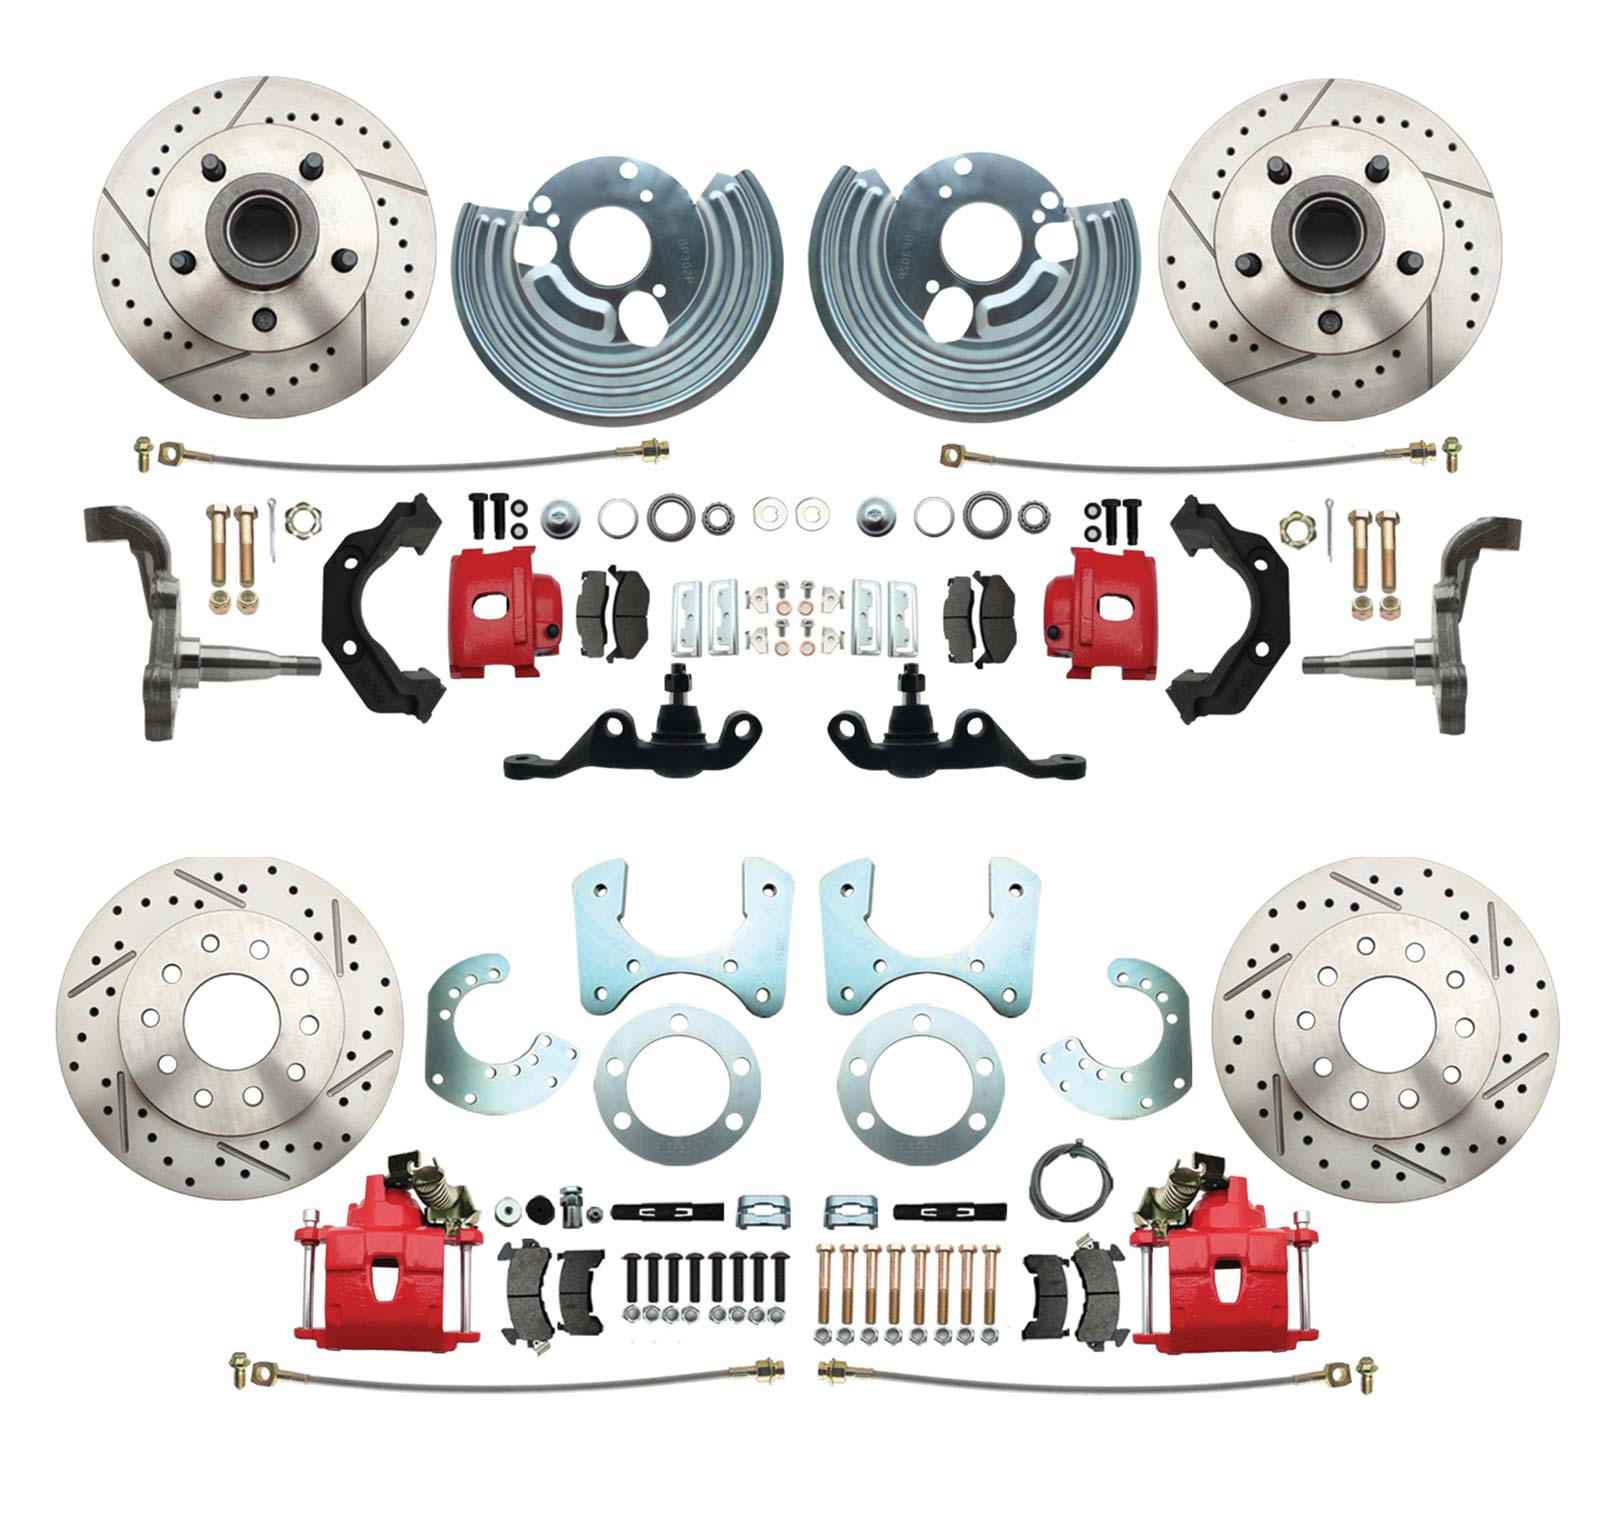 1962-1972 Mopar A Body Large Bolt Pattern High Performance Disc Brake Conversion Kit W/ Powder Coated Red Calipers